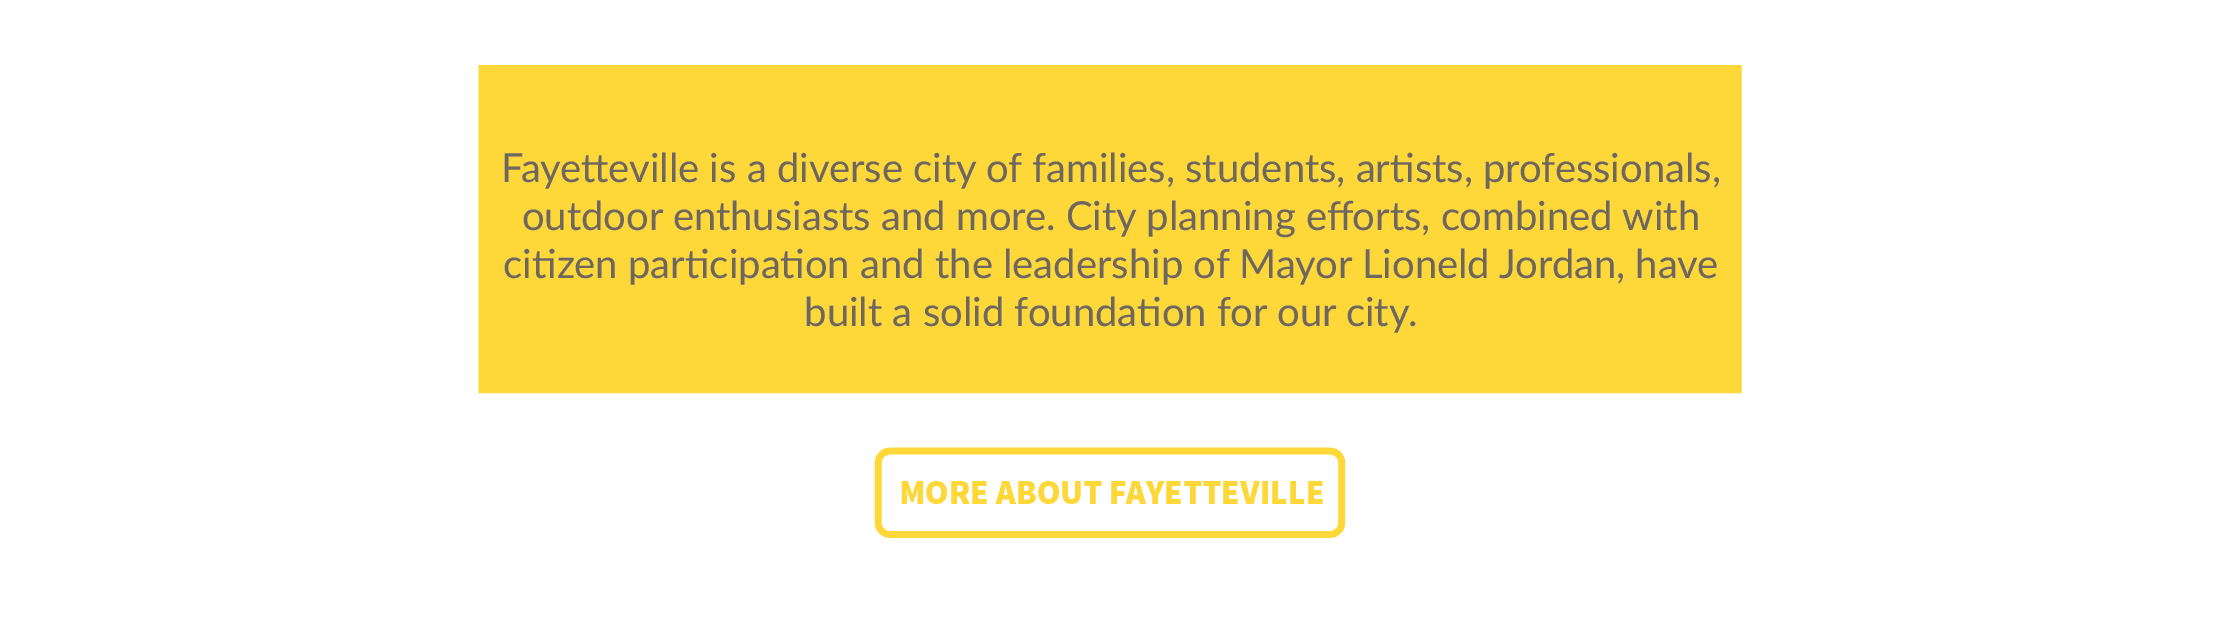 About Fayetteville